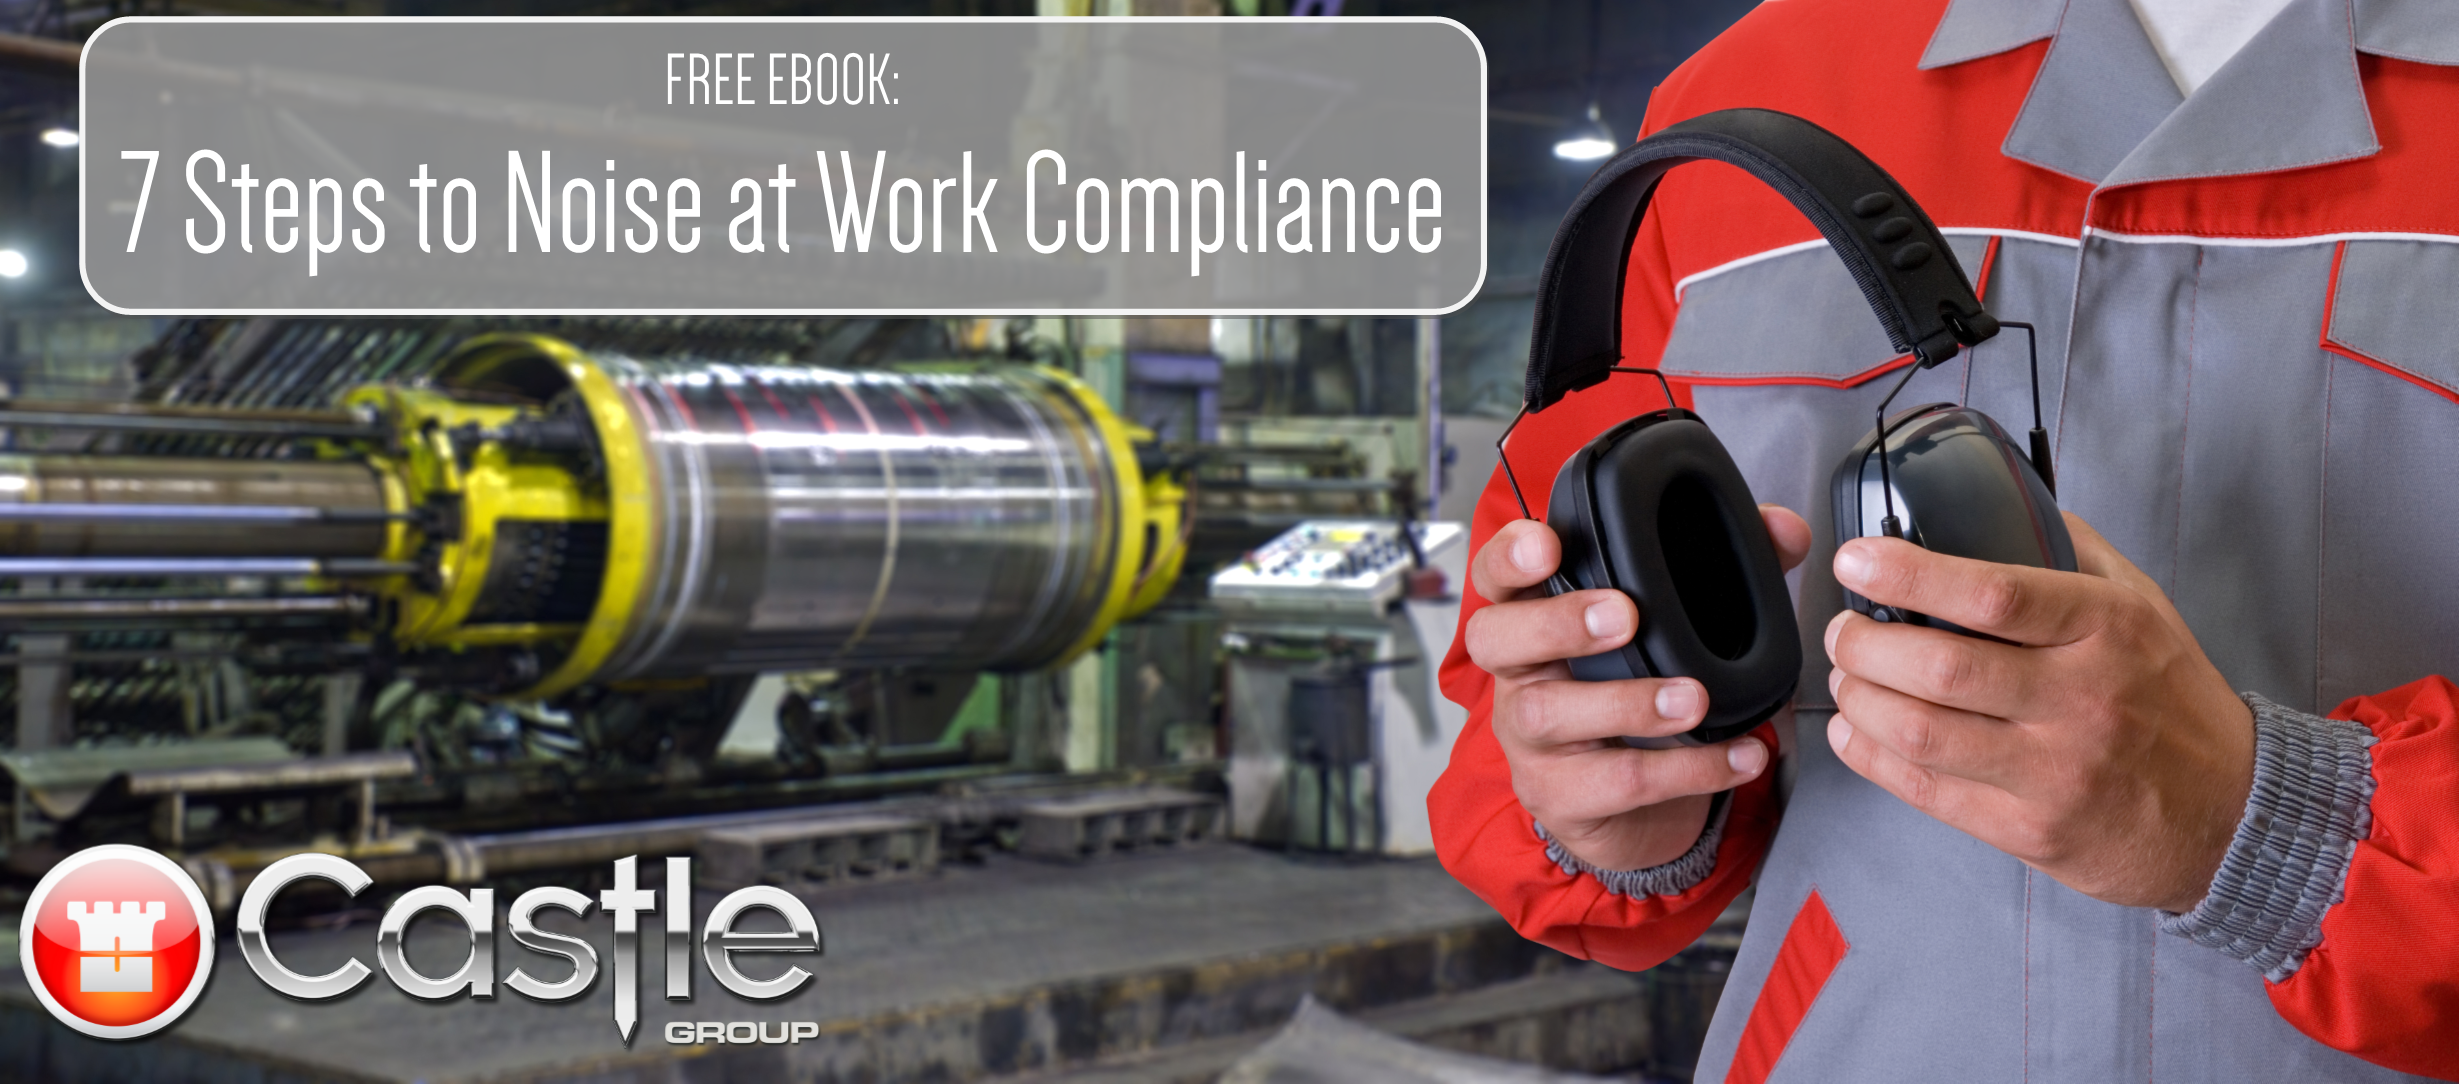 7 Steps to Noise at Work Compliance